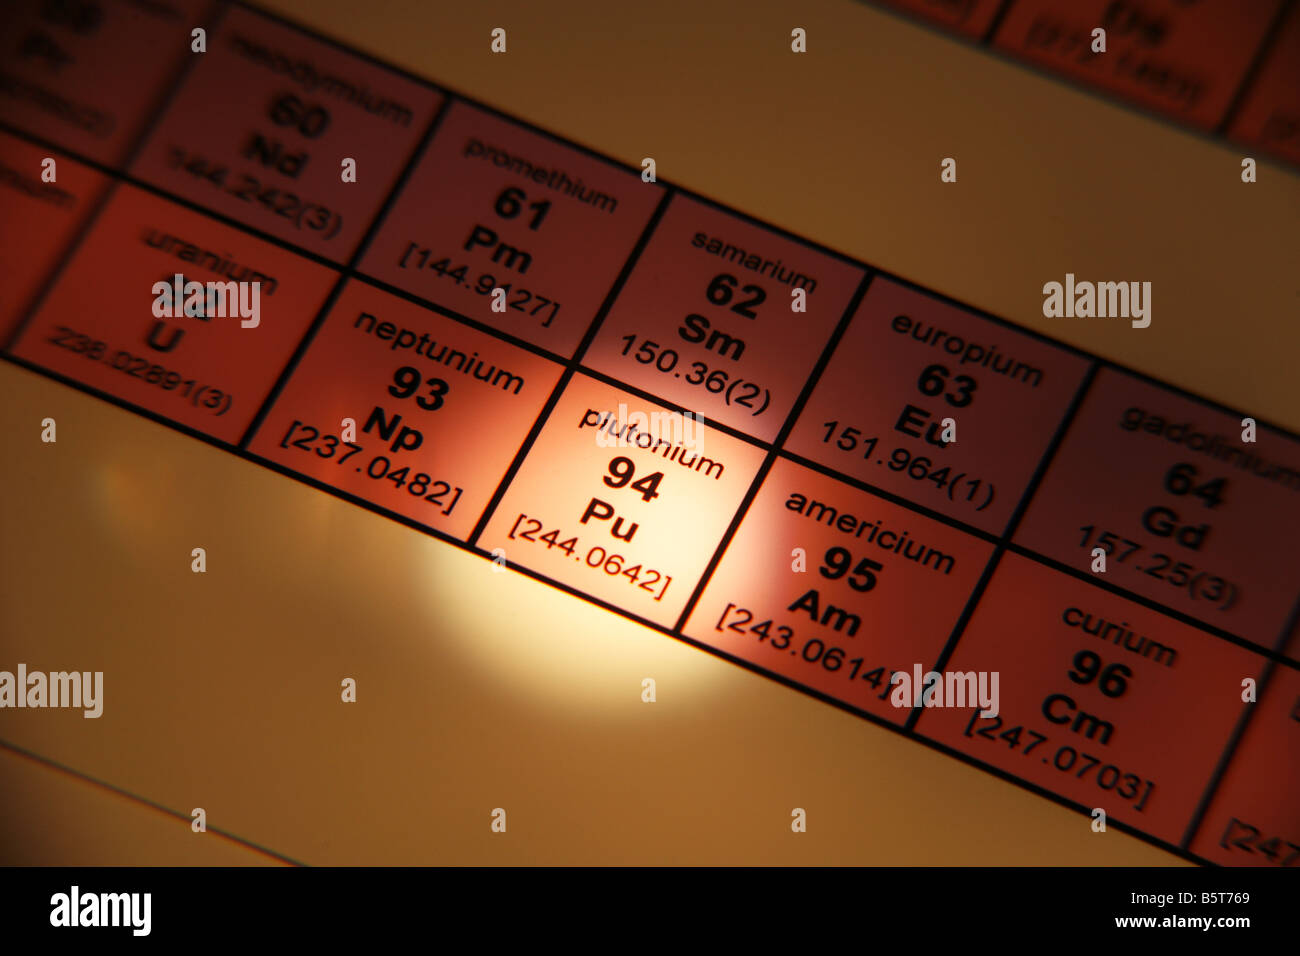 Periodic table of elements plutonium stock photo 20816161 alamy periodic table of elements plutonium biocorpaavc Image collections